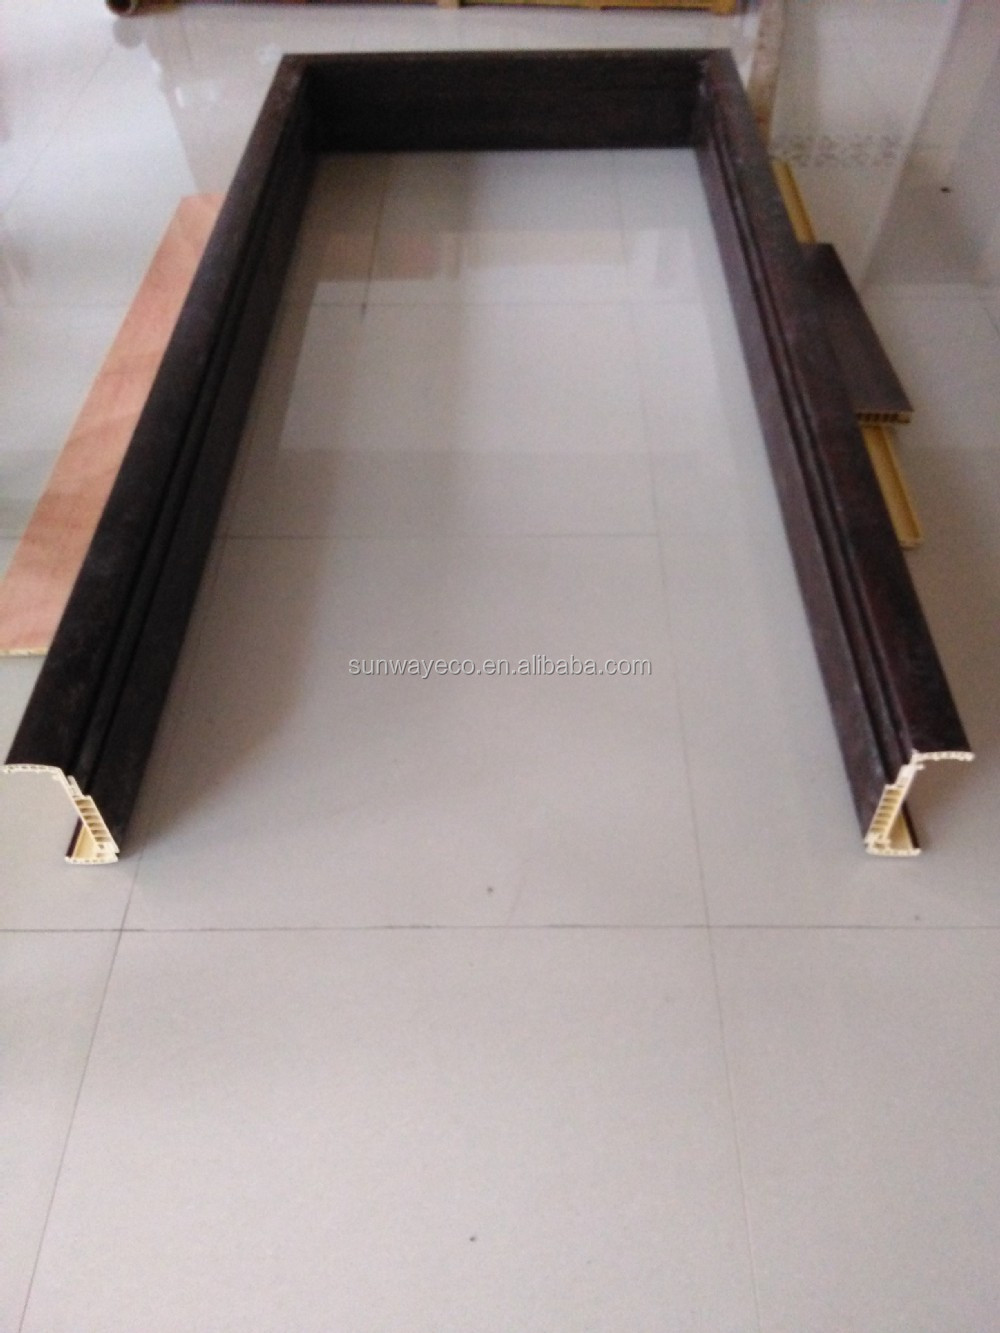 Pvc Door Frame Detail : Waterproof wpc door frame cladding pvc buy